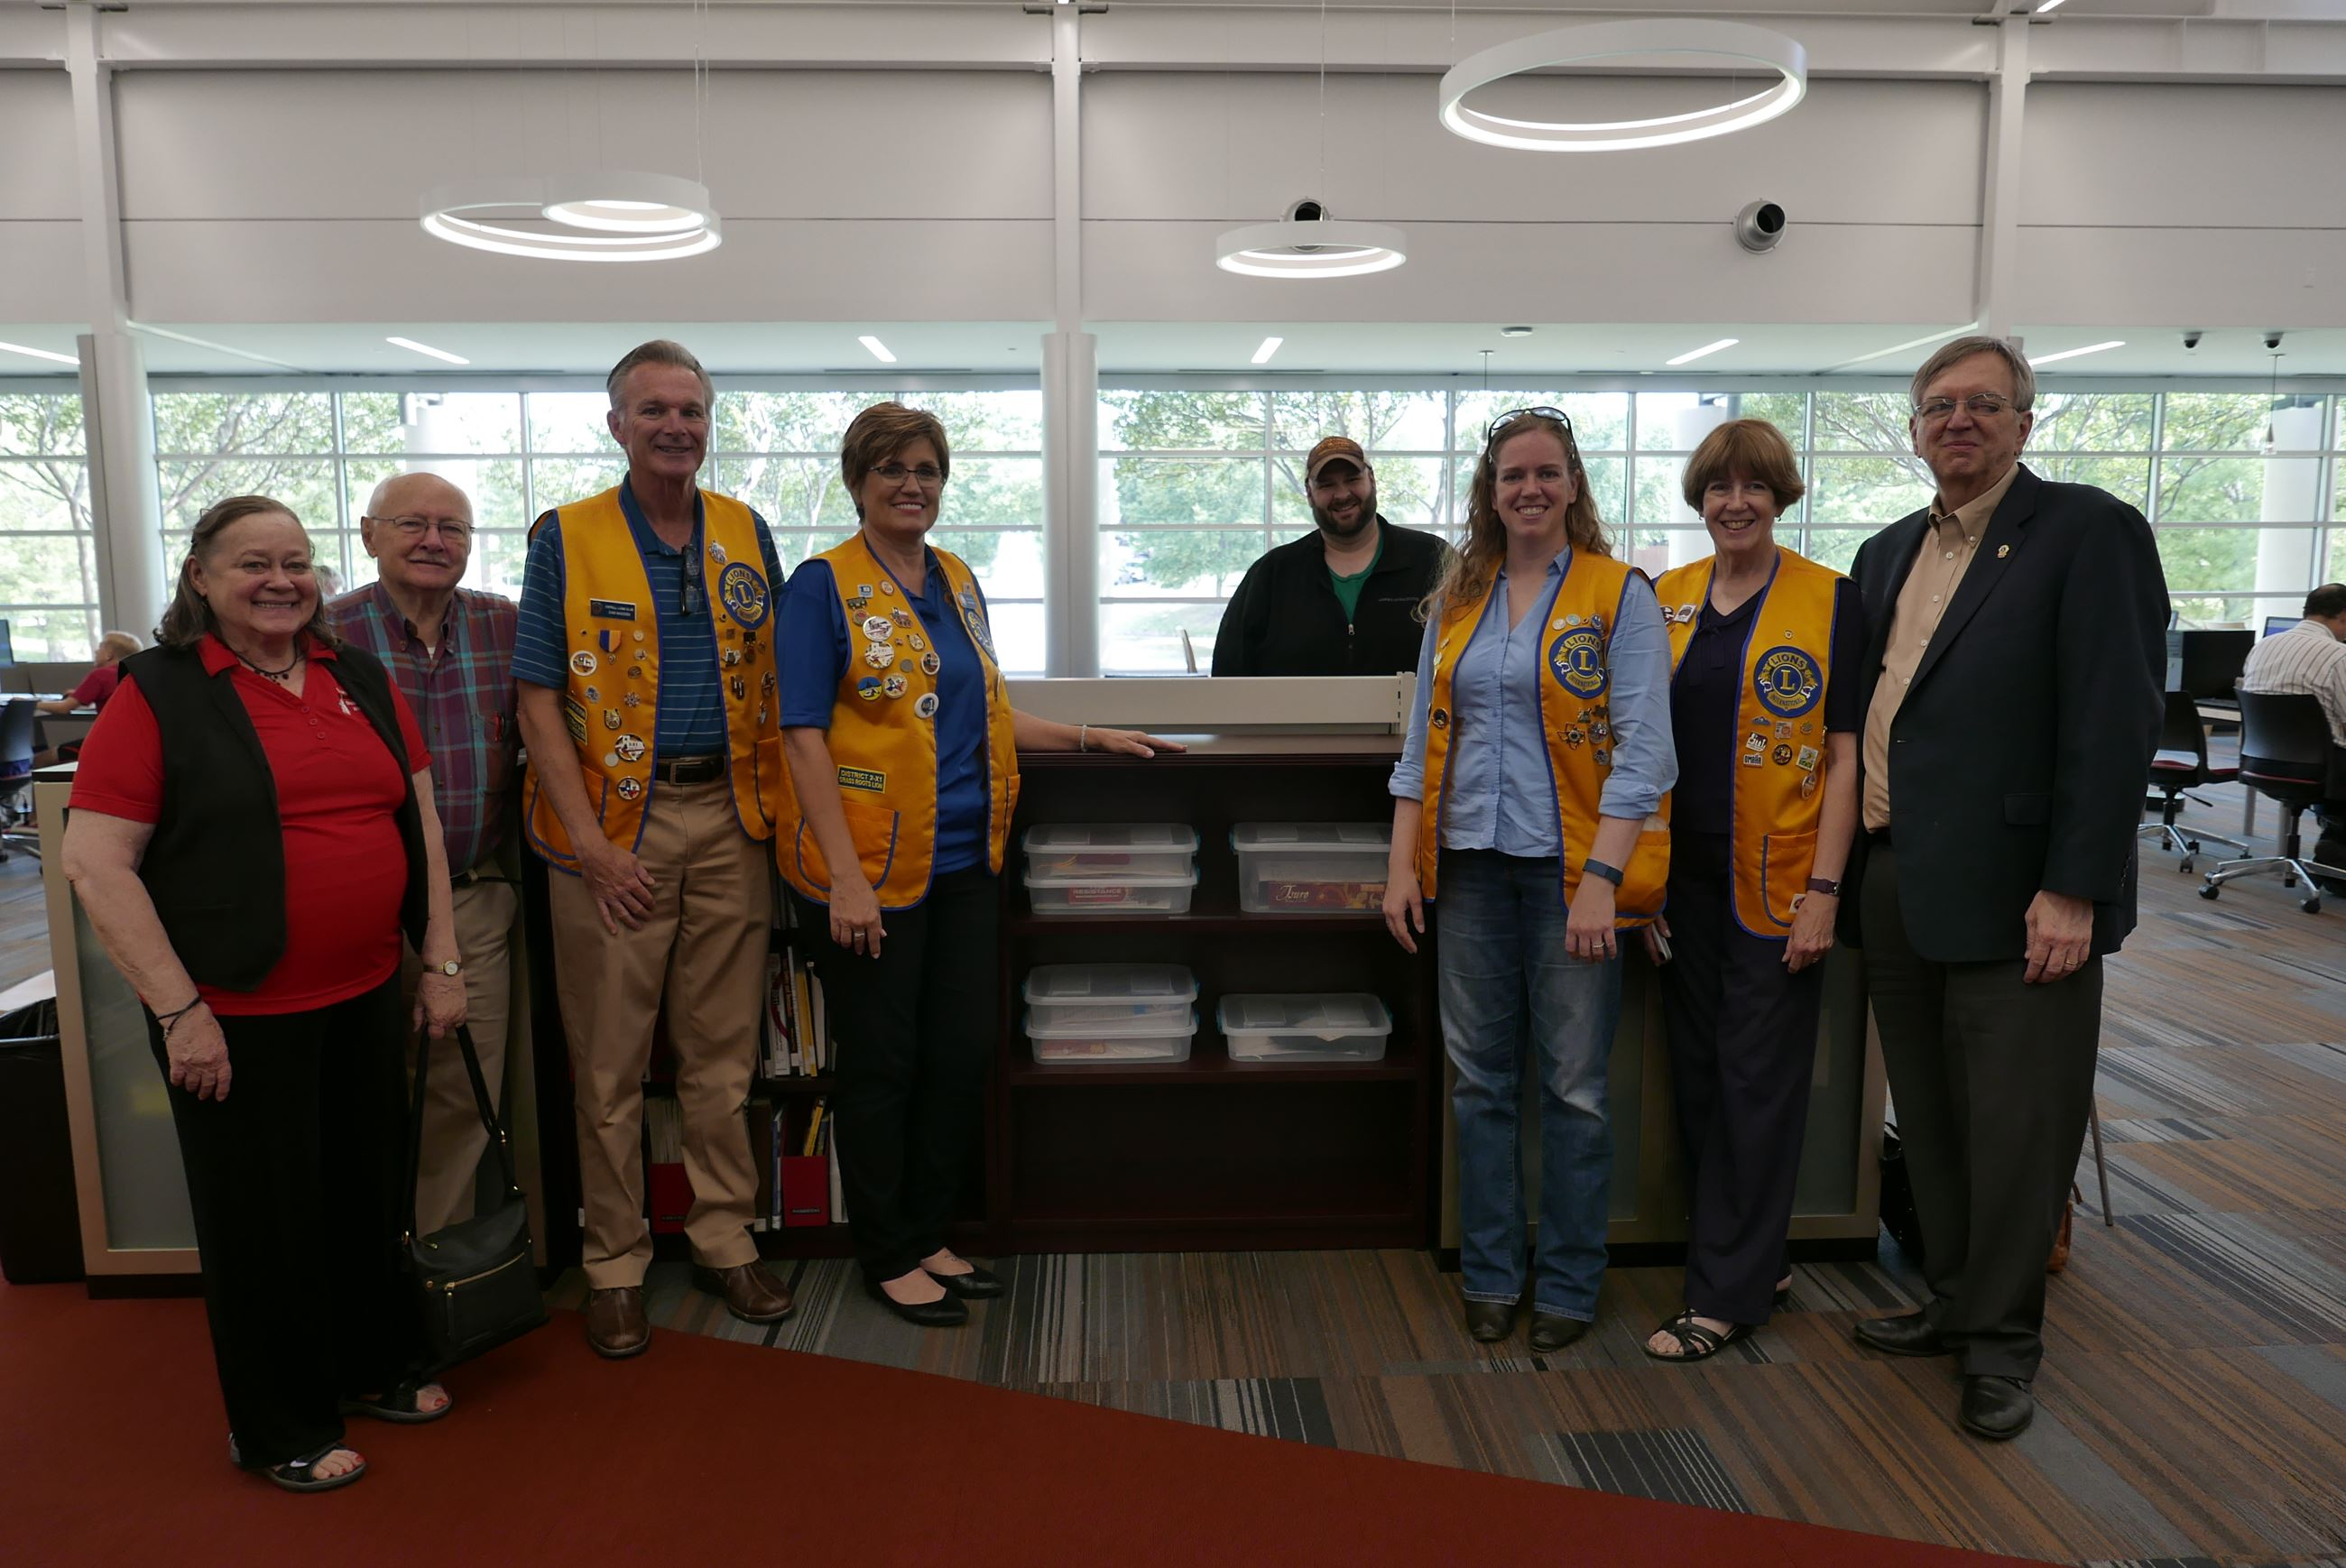 Members of the Coppell Lions Club standing next to the Braille Games Shelf.